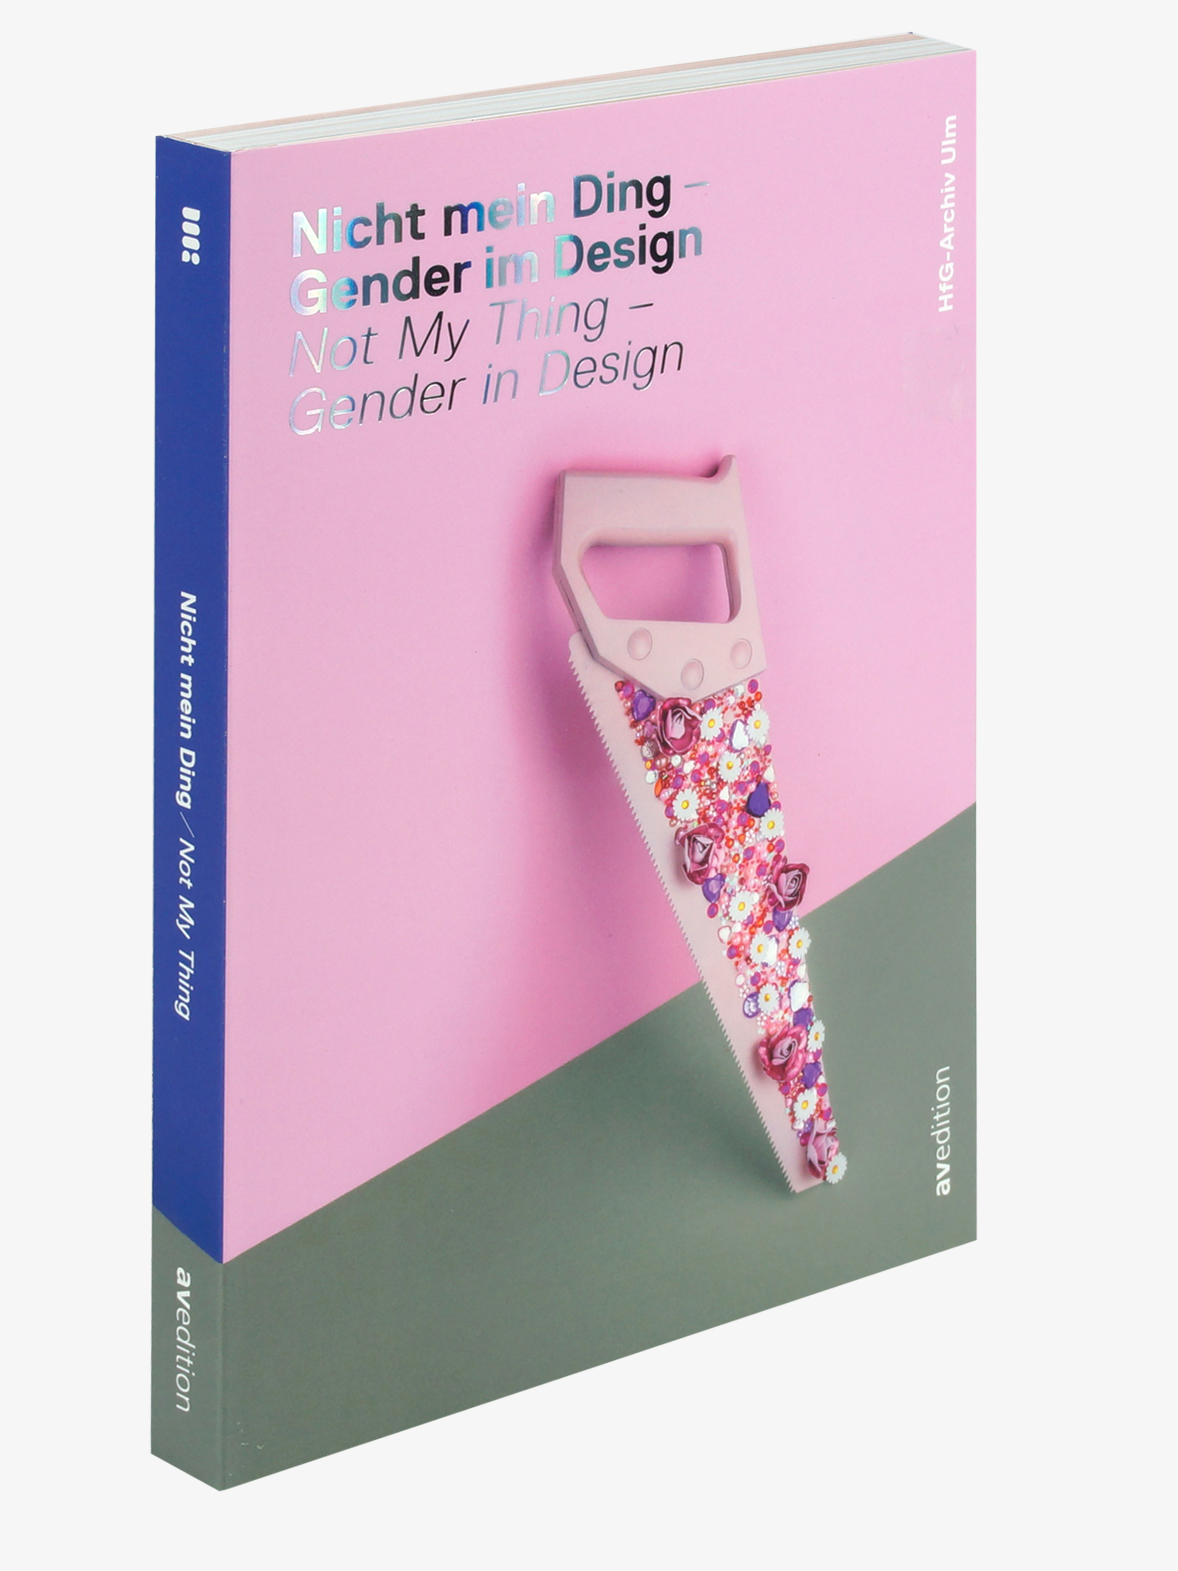 Not My Thing − Gender in Design